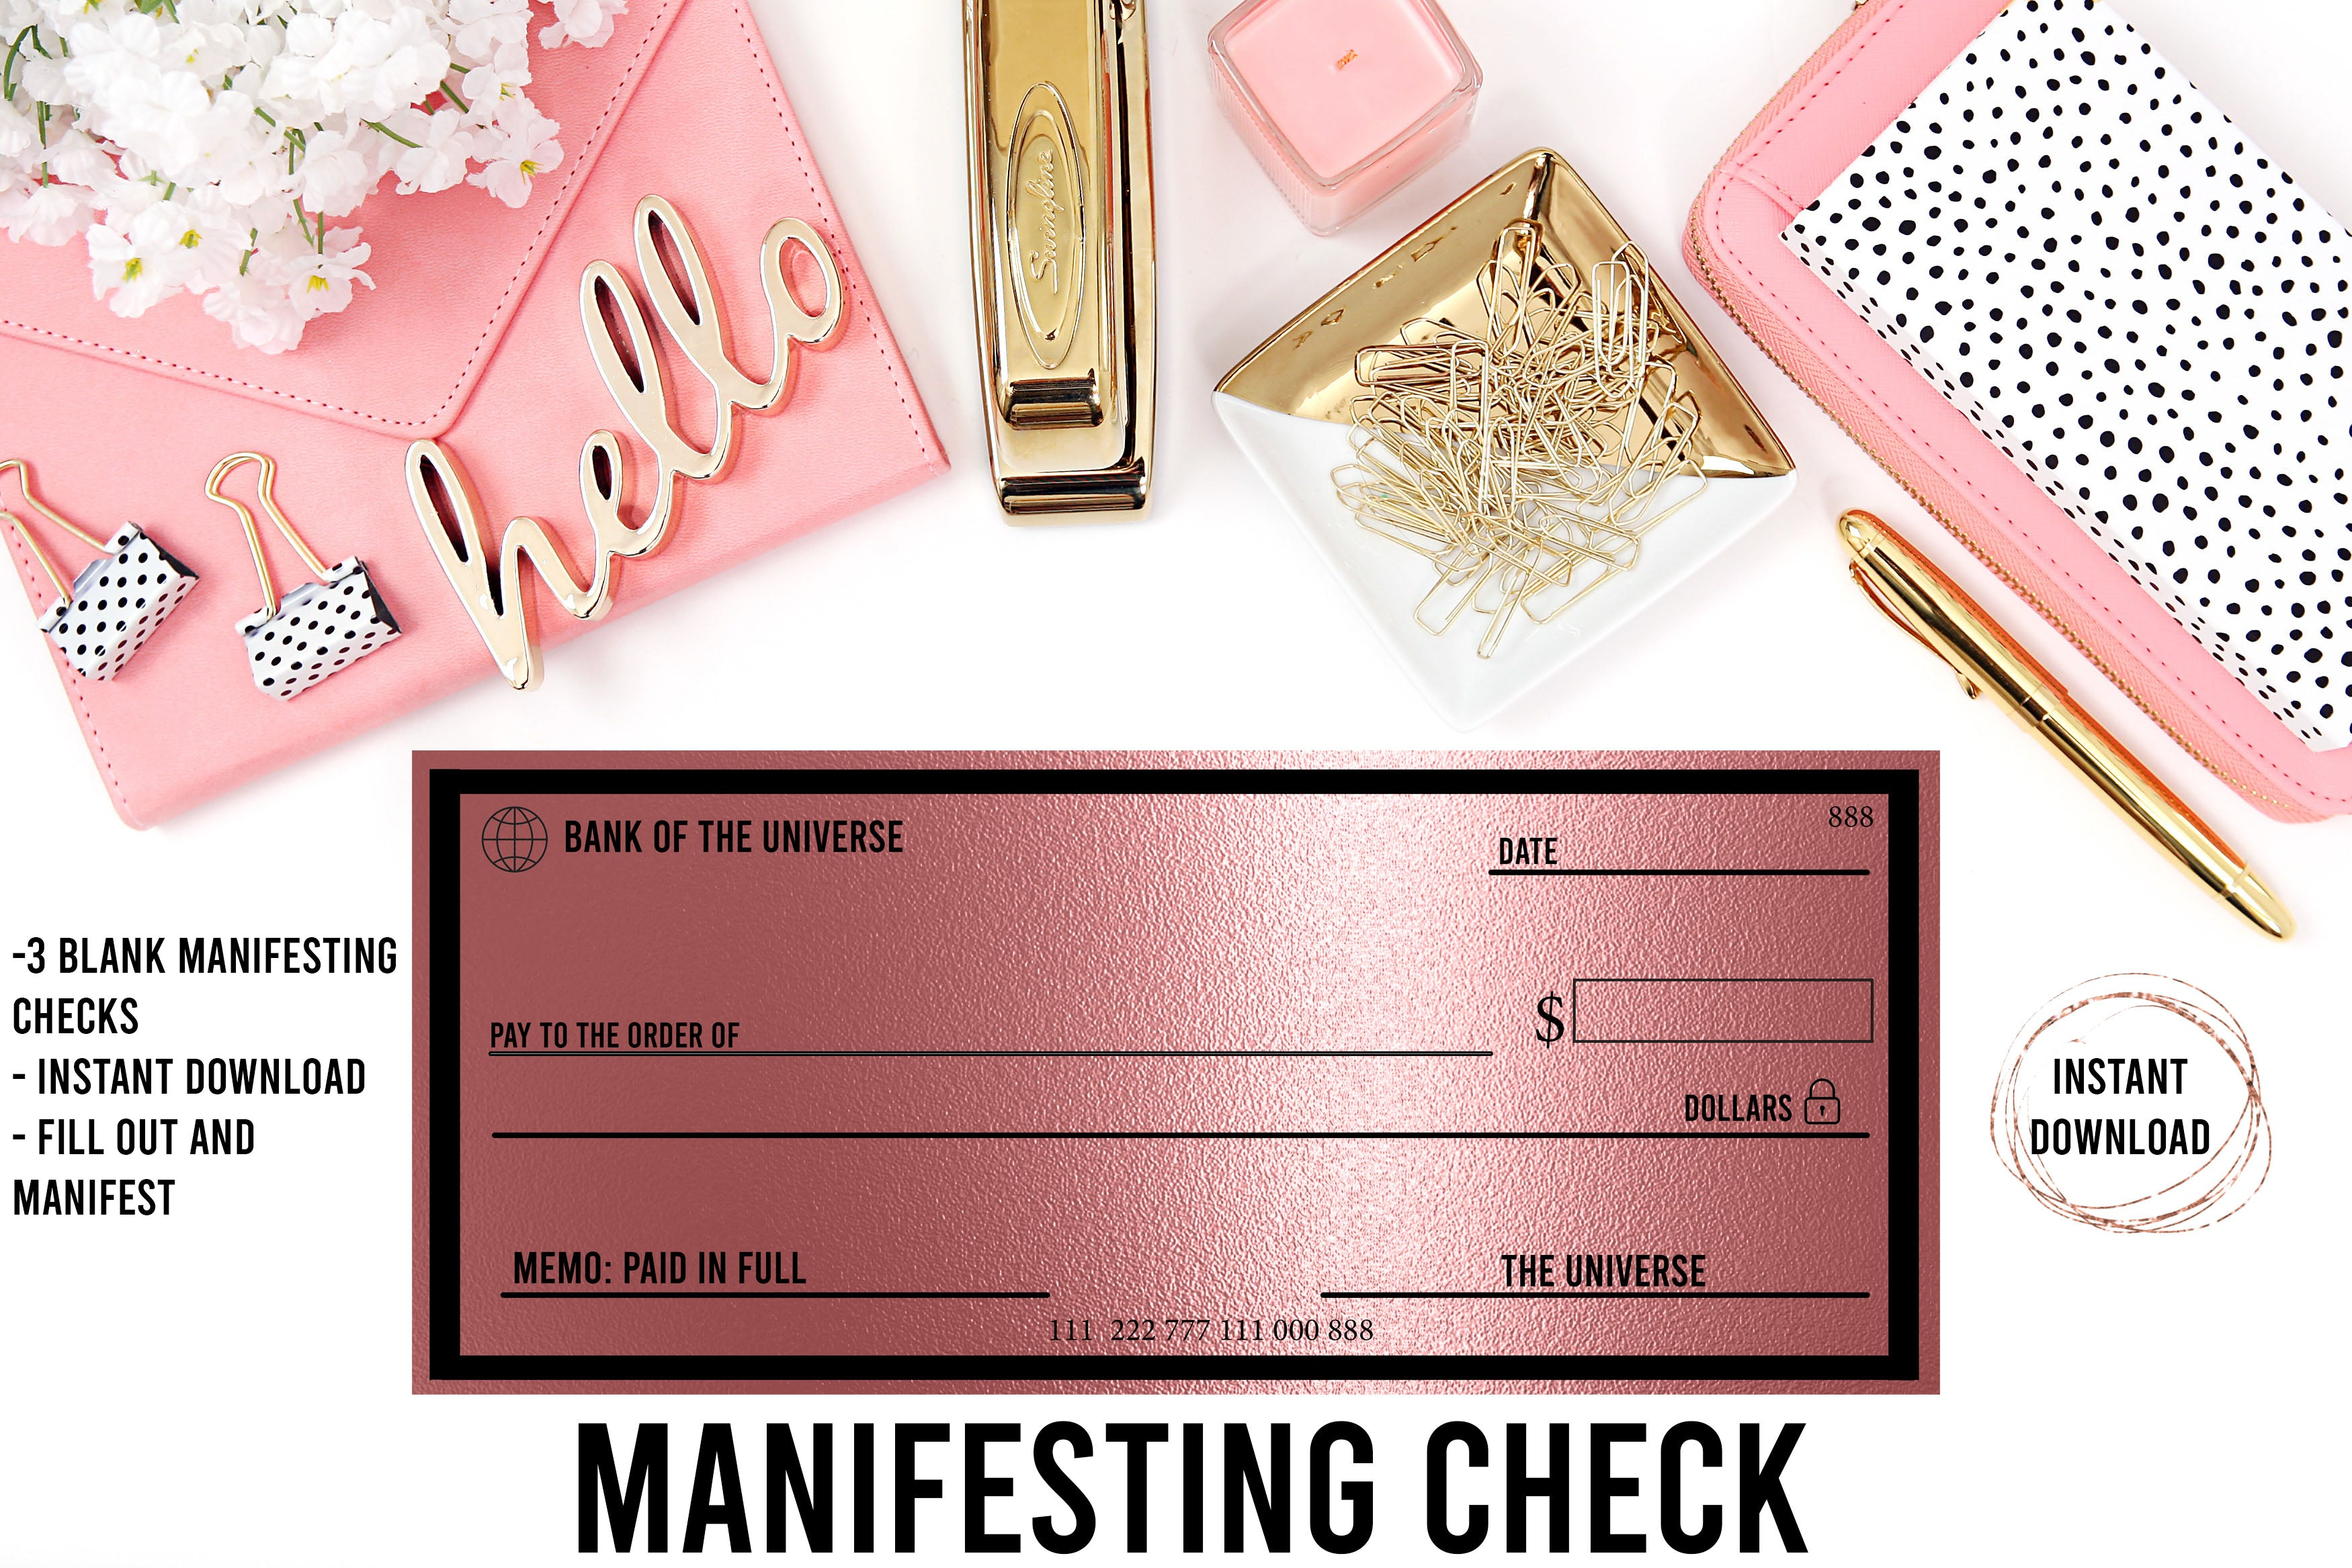 Manifesting Checks// Abundance Checks// Law of Attraction Checks// Manifest Money// Bank of the Universe// Manifestation Checks